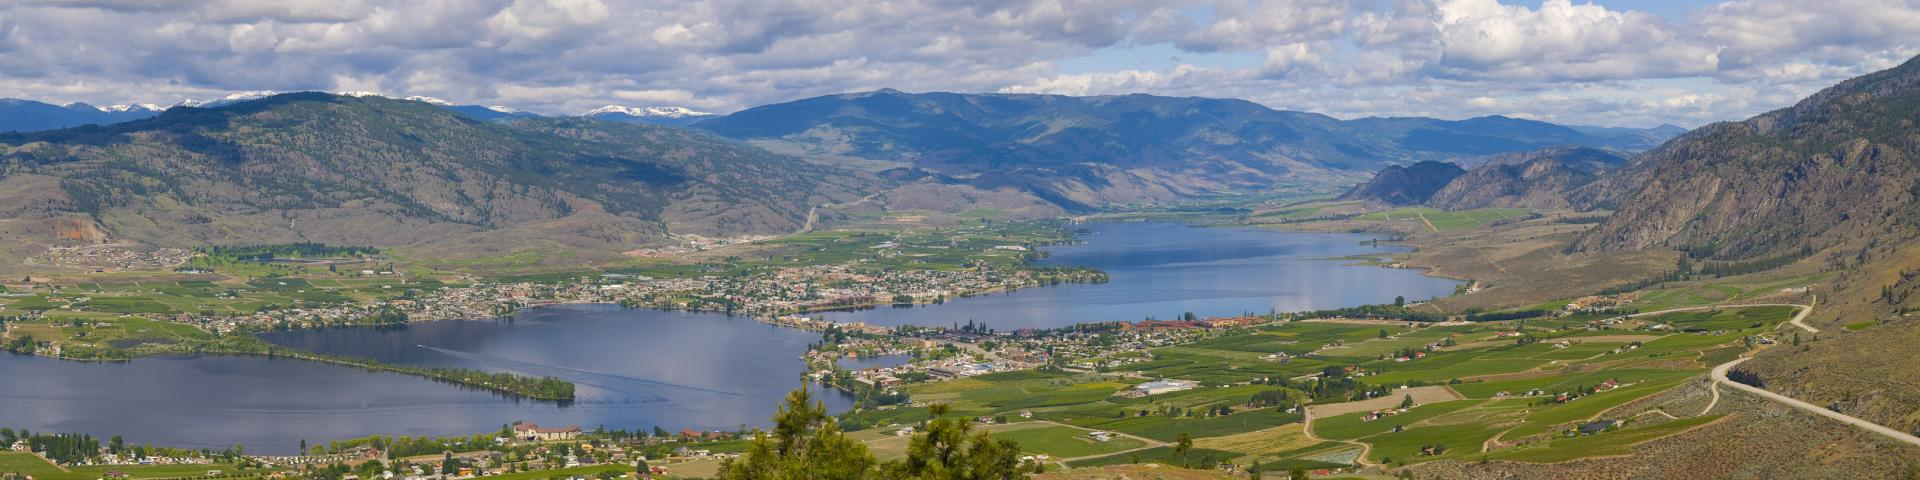 Landscape image of Osoyoos Lake